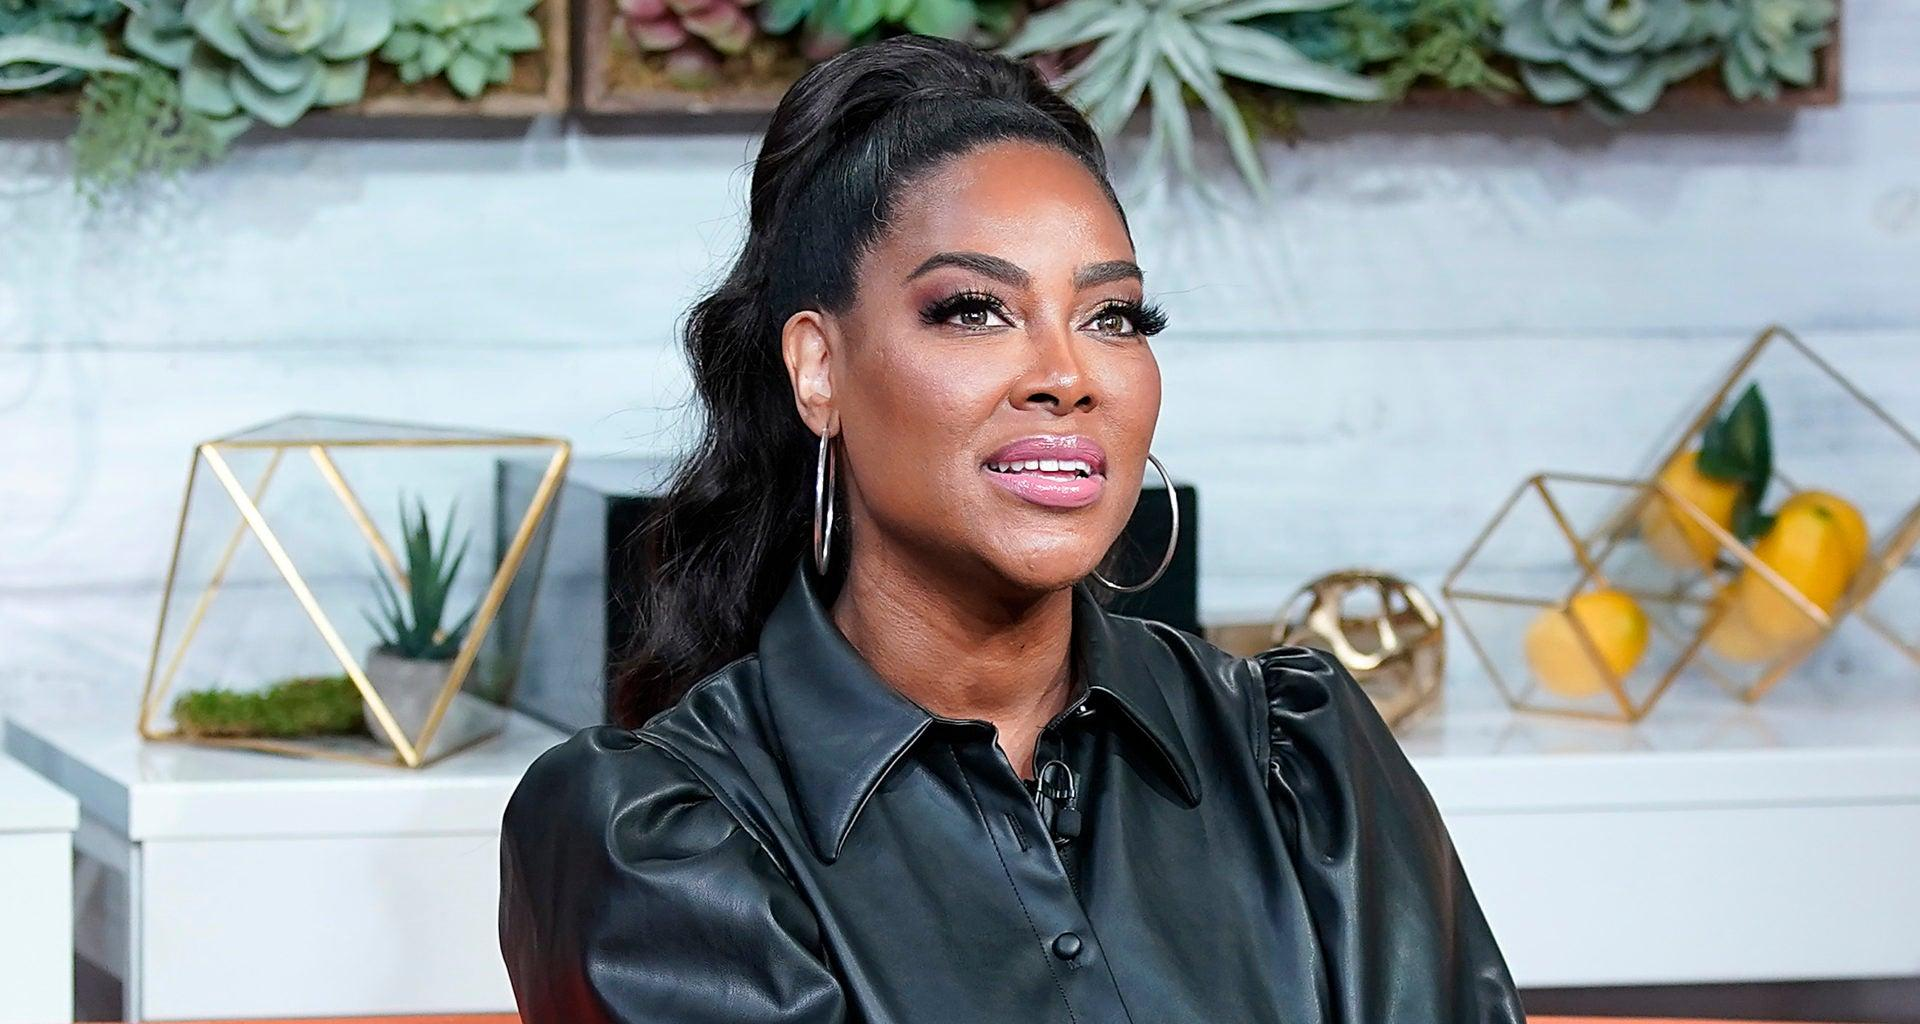 Kenya Moore Shows Fans What Peace Means To Her - See The Photo